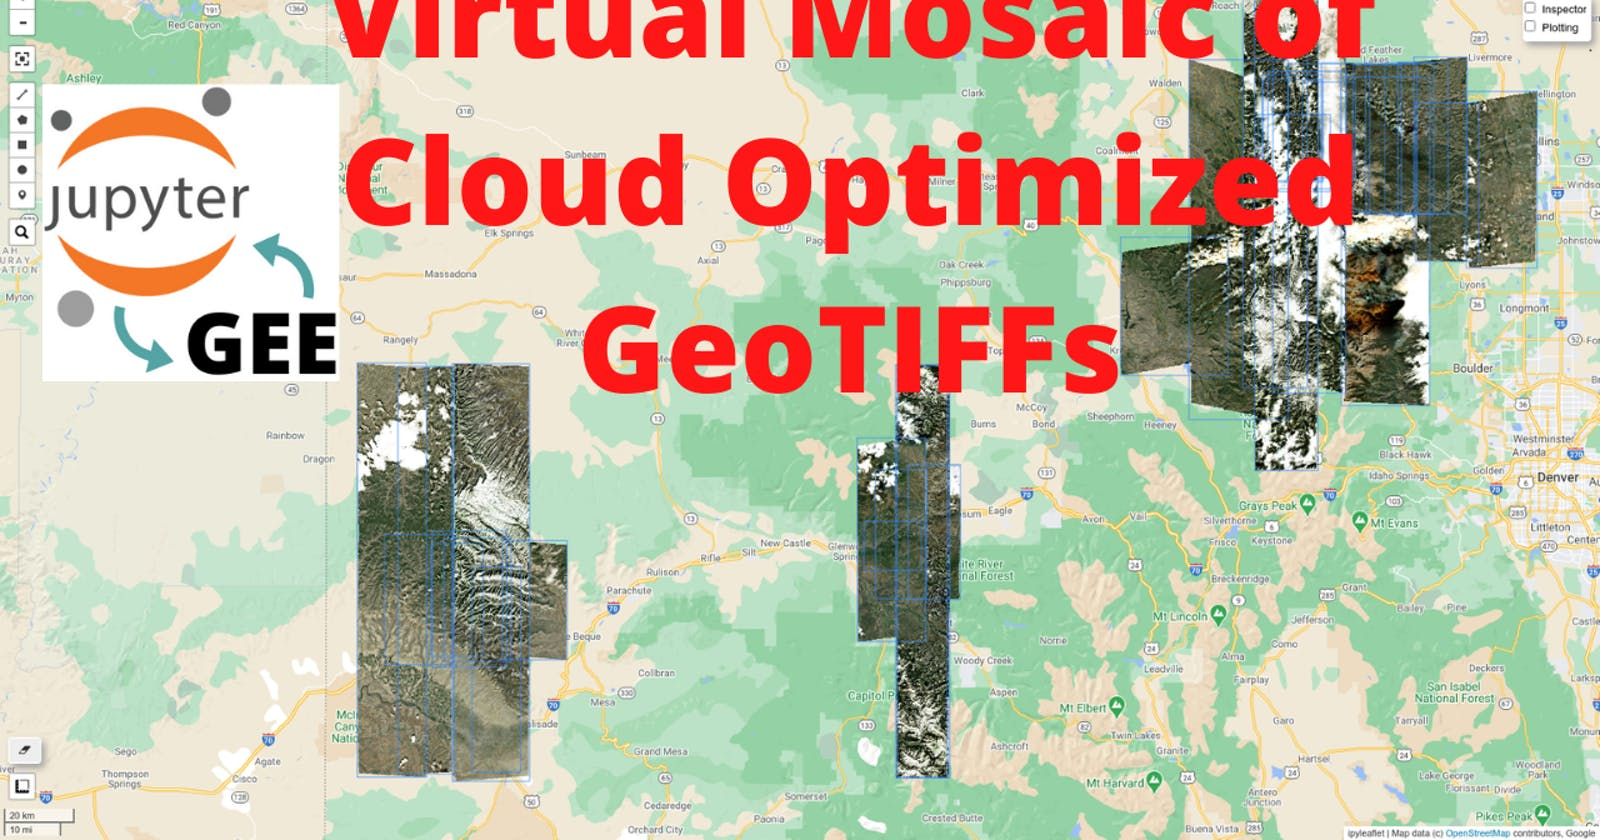 GEE Tutorial #45 - How to create a virtual mosaic of Cloud Optimized GeoTIFFs (COG)